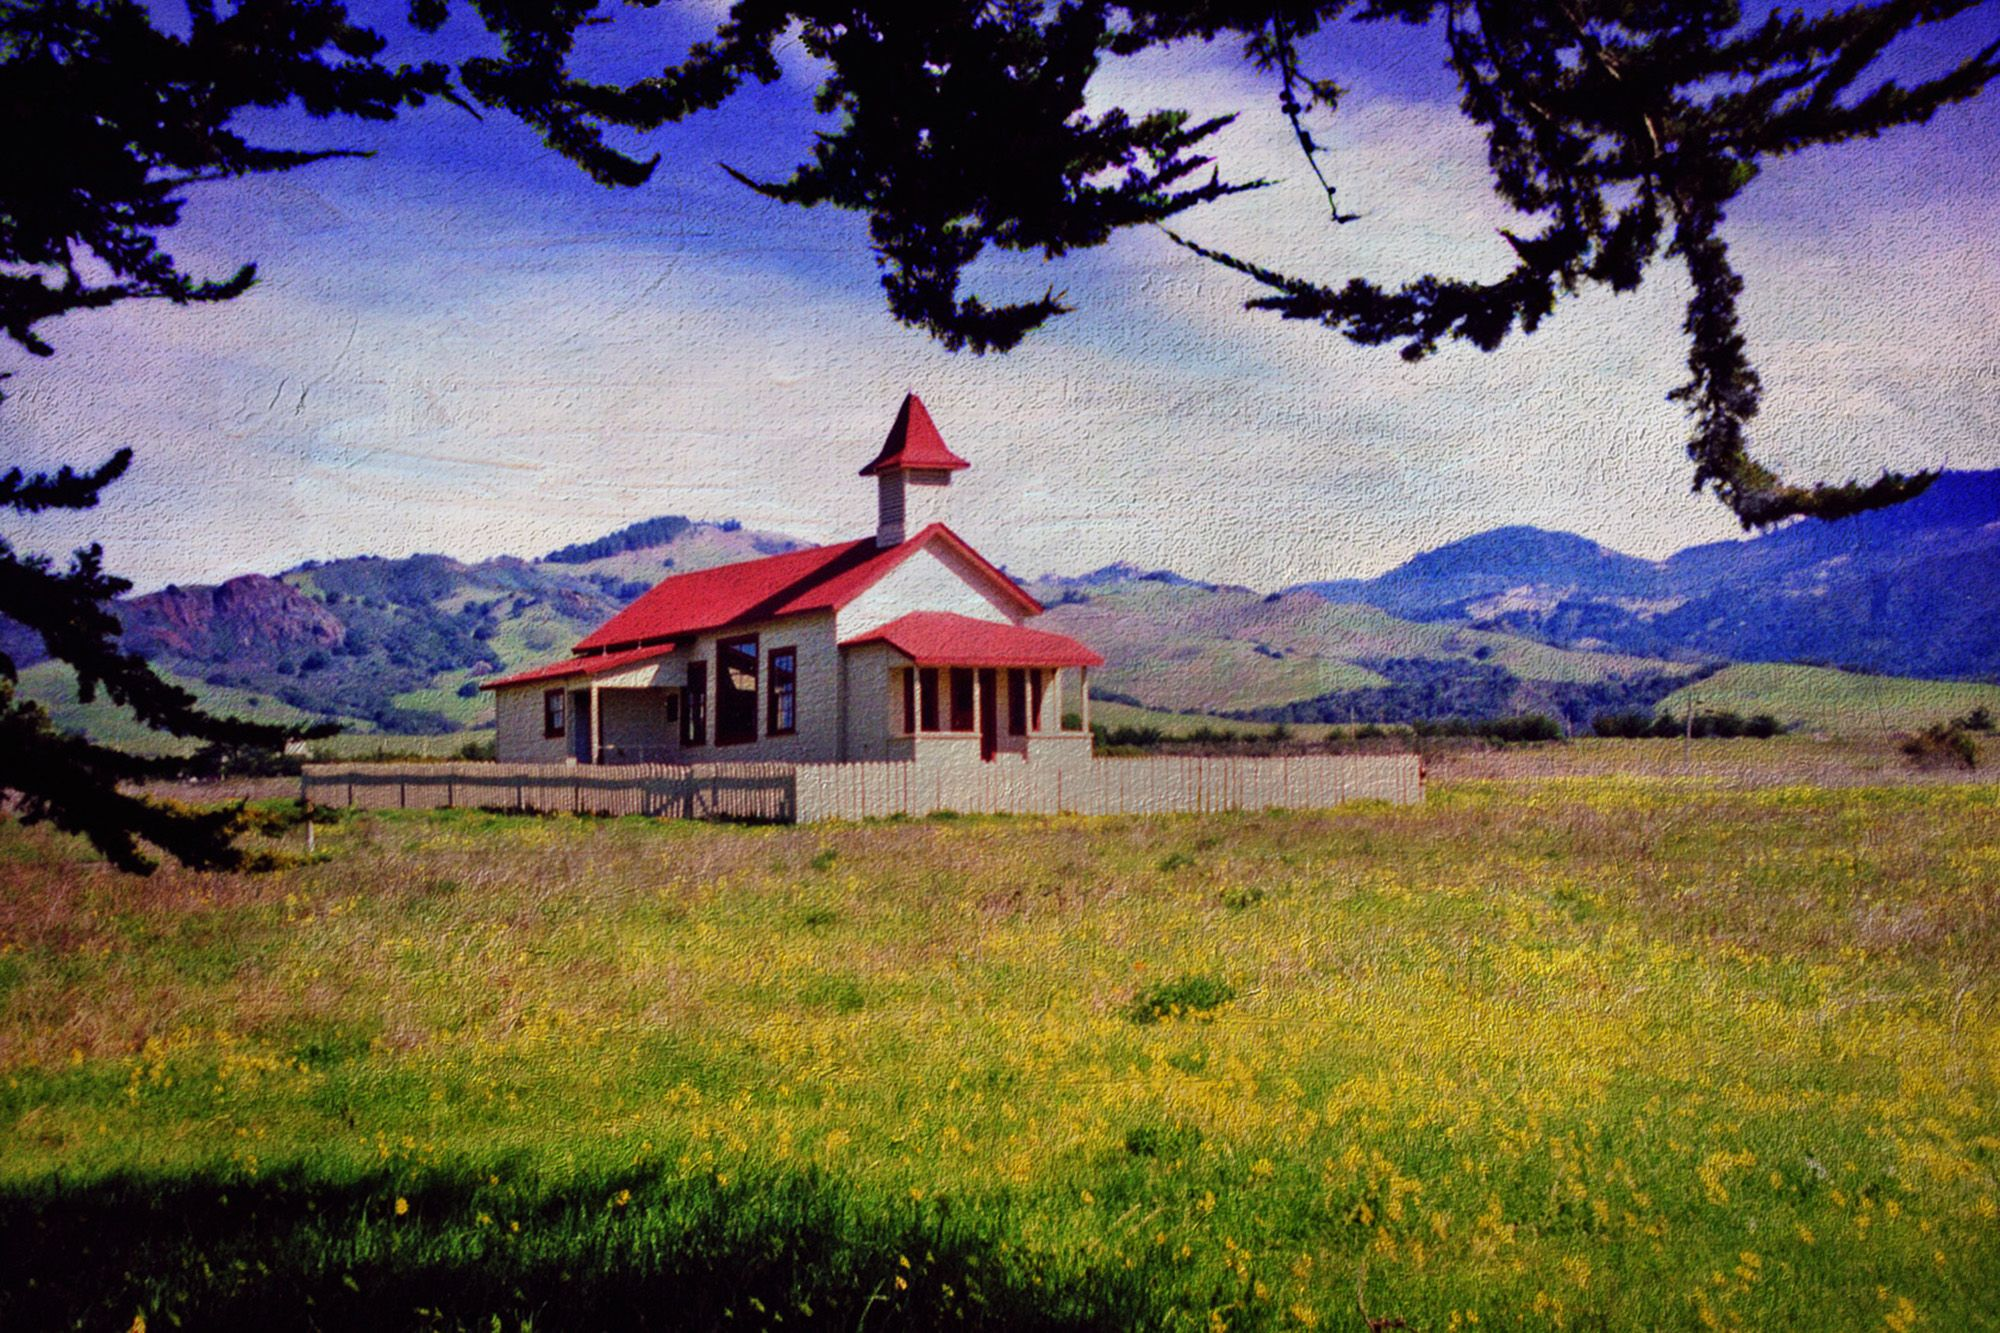 San Simeon School House - Photogreaphed in 1987